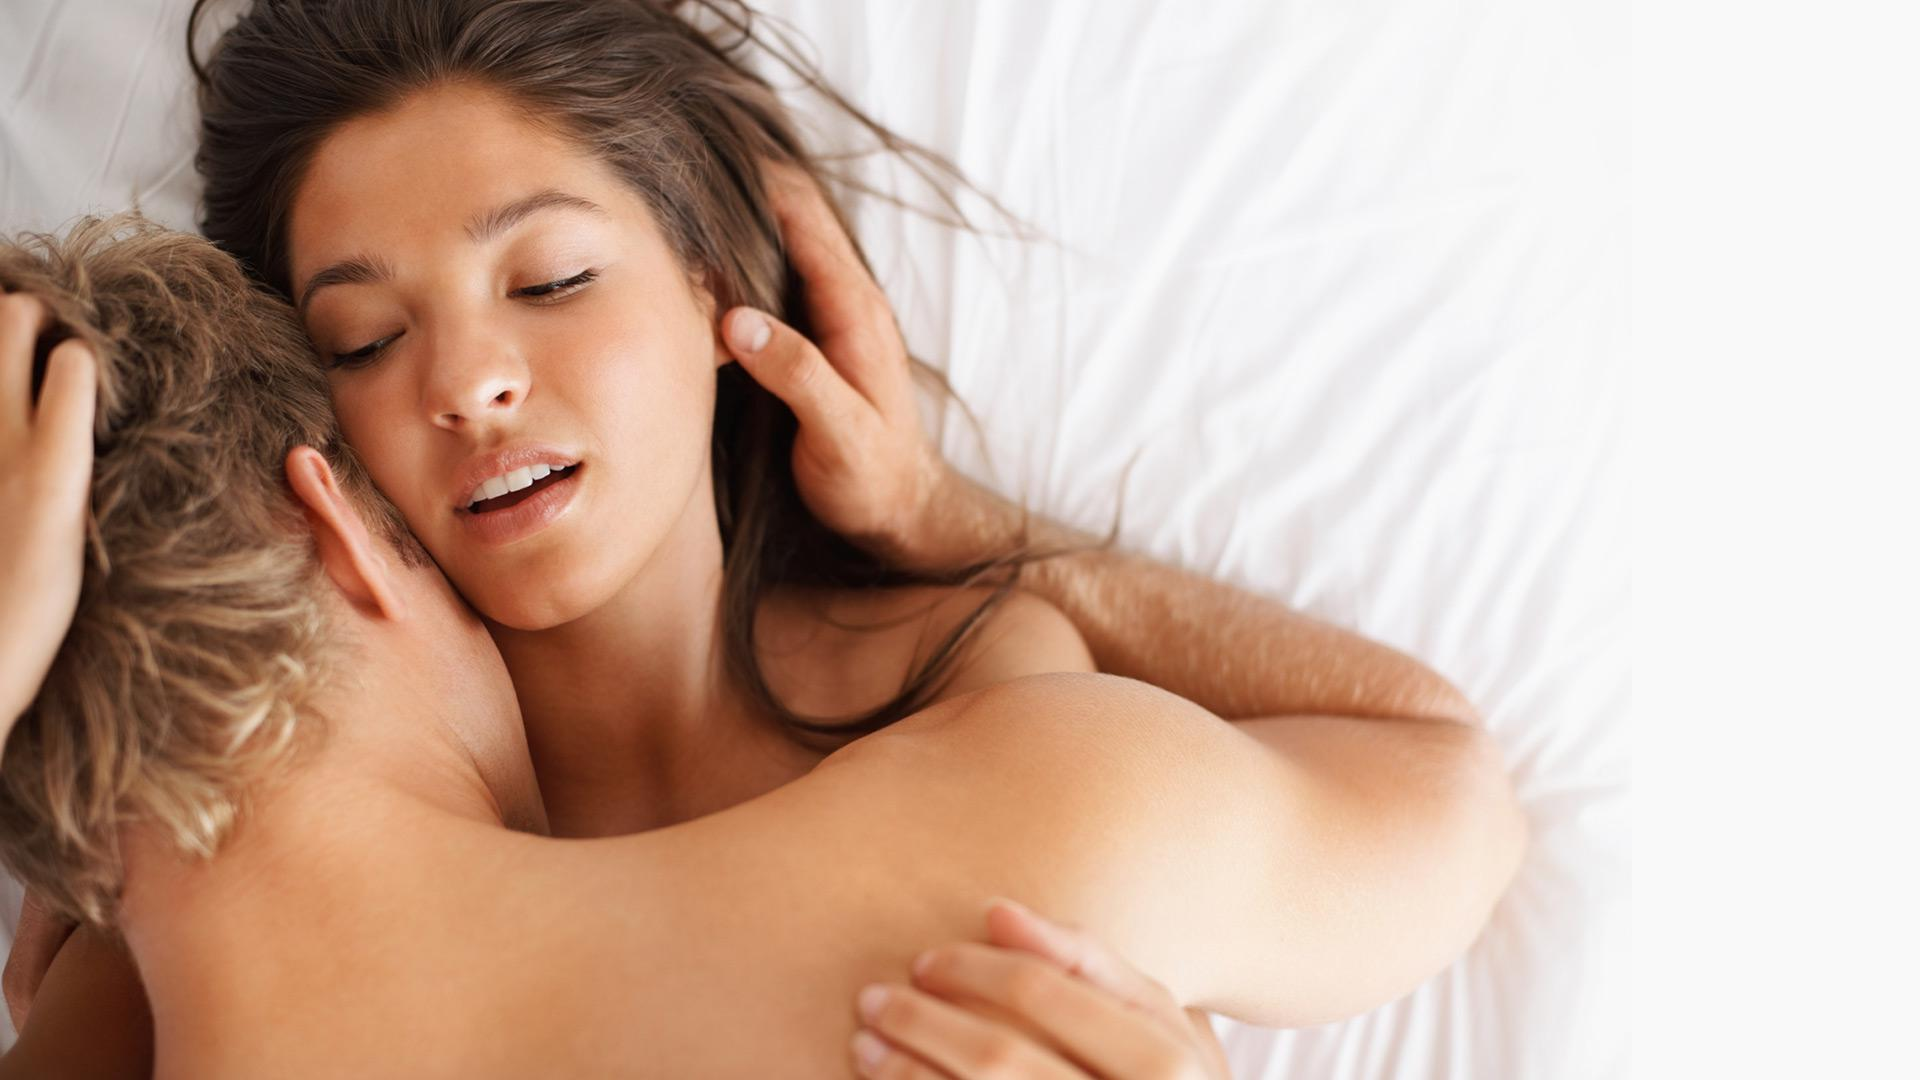 Women having sex with other woman